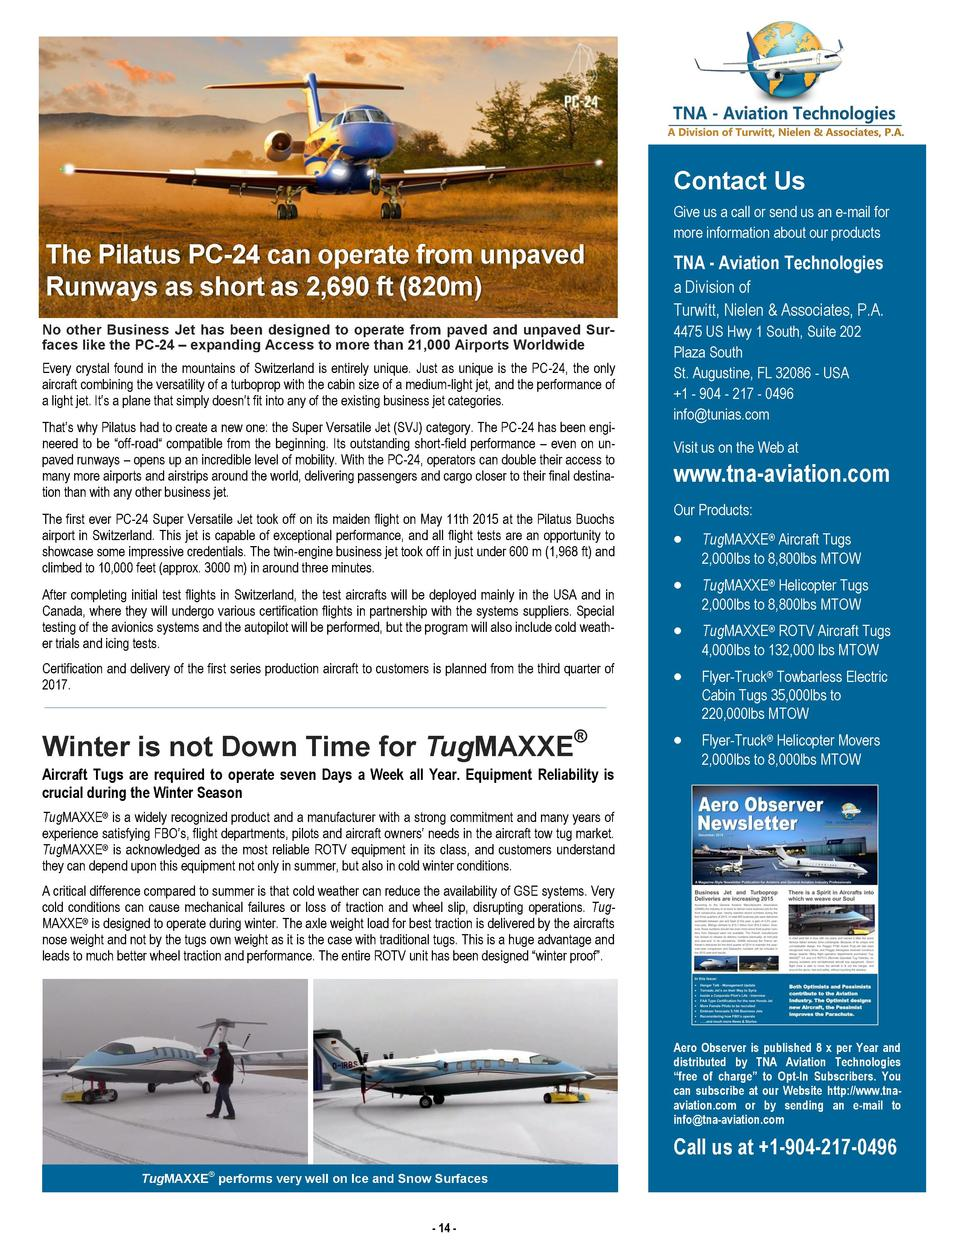 Contact Us  The Pilatus PC-24 can operate from unpaved Runways as short as 2,690 ft  820m  No other Business Jet has been ...